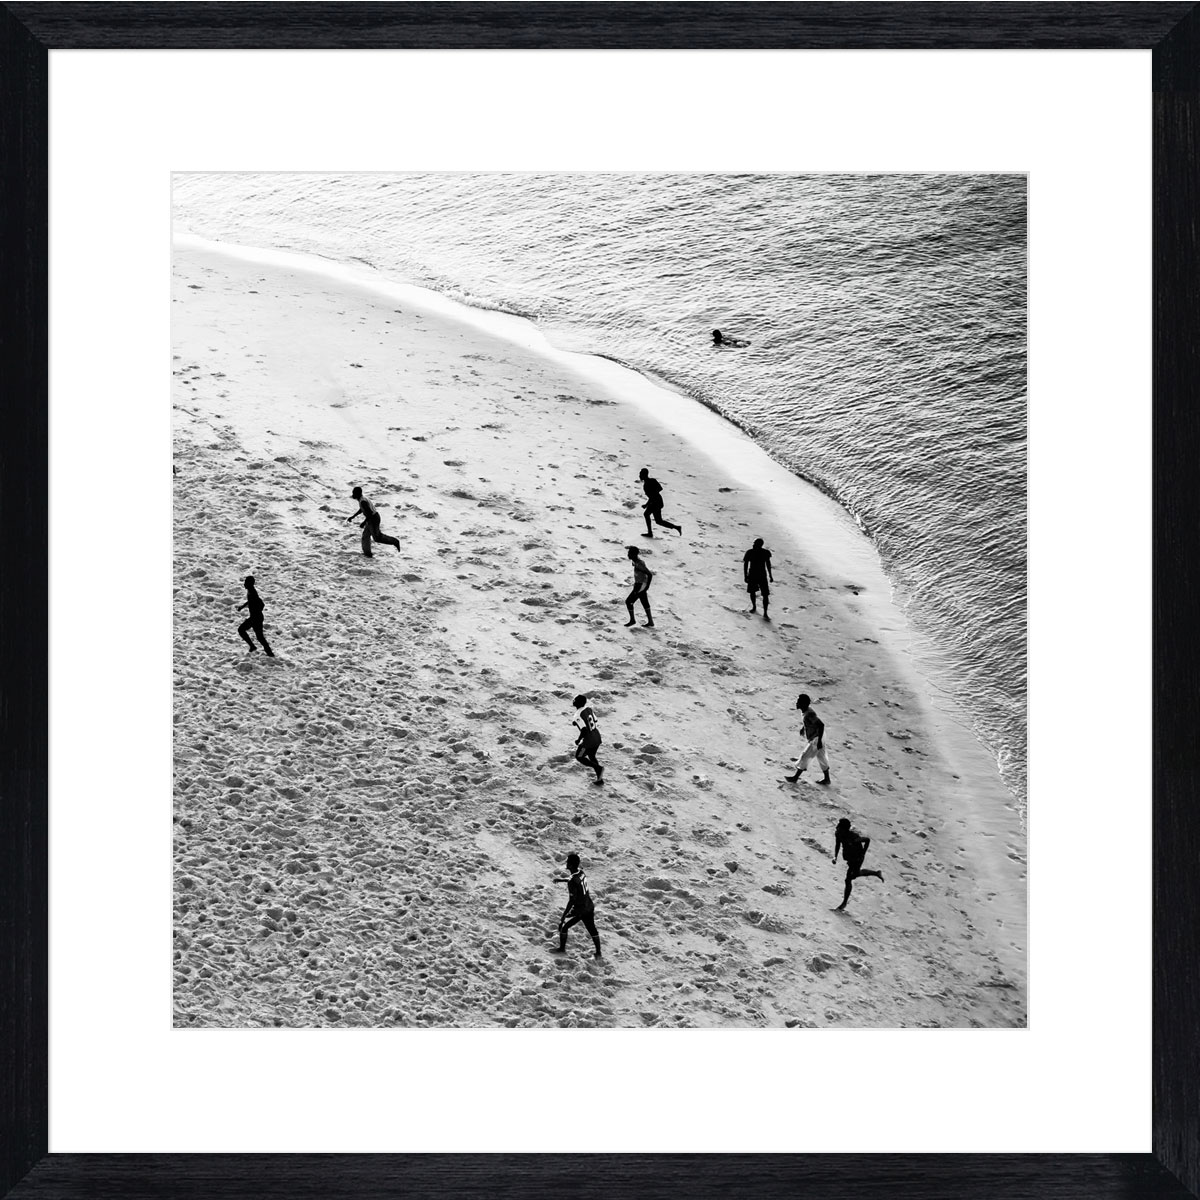 Beach-football-I-black